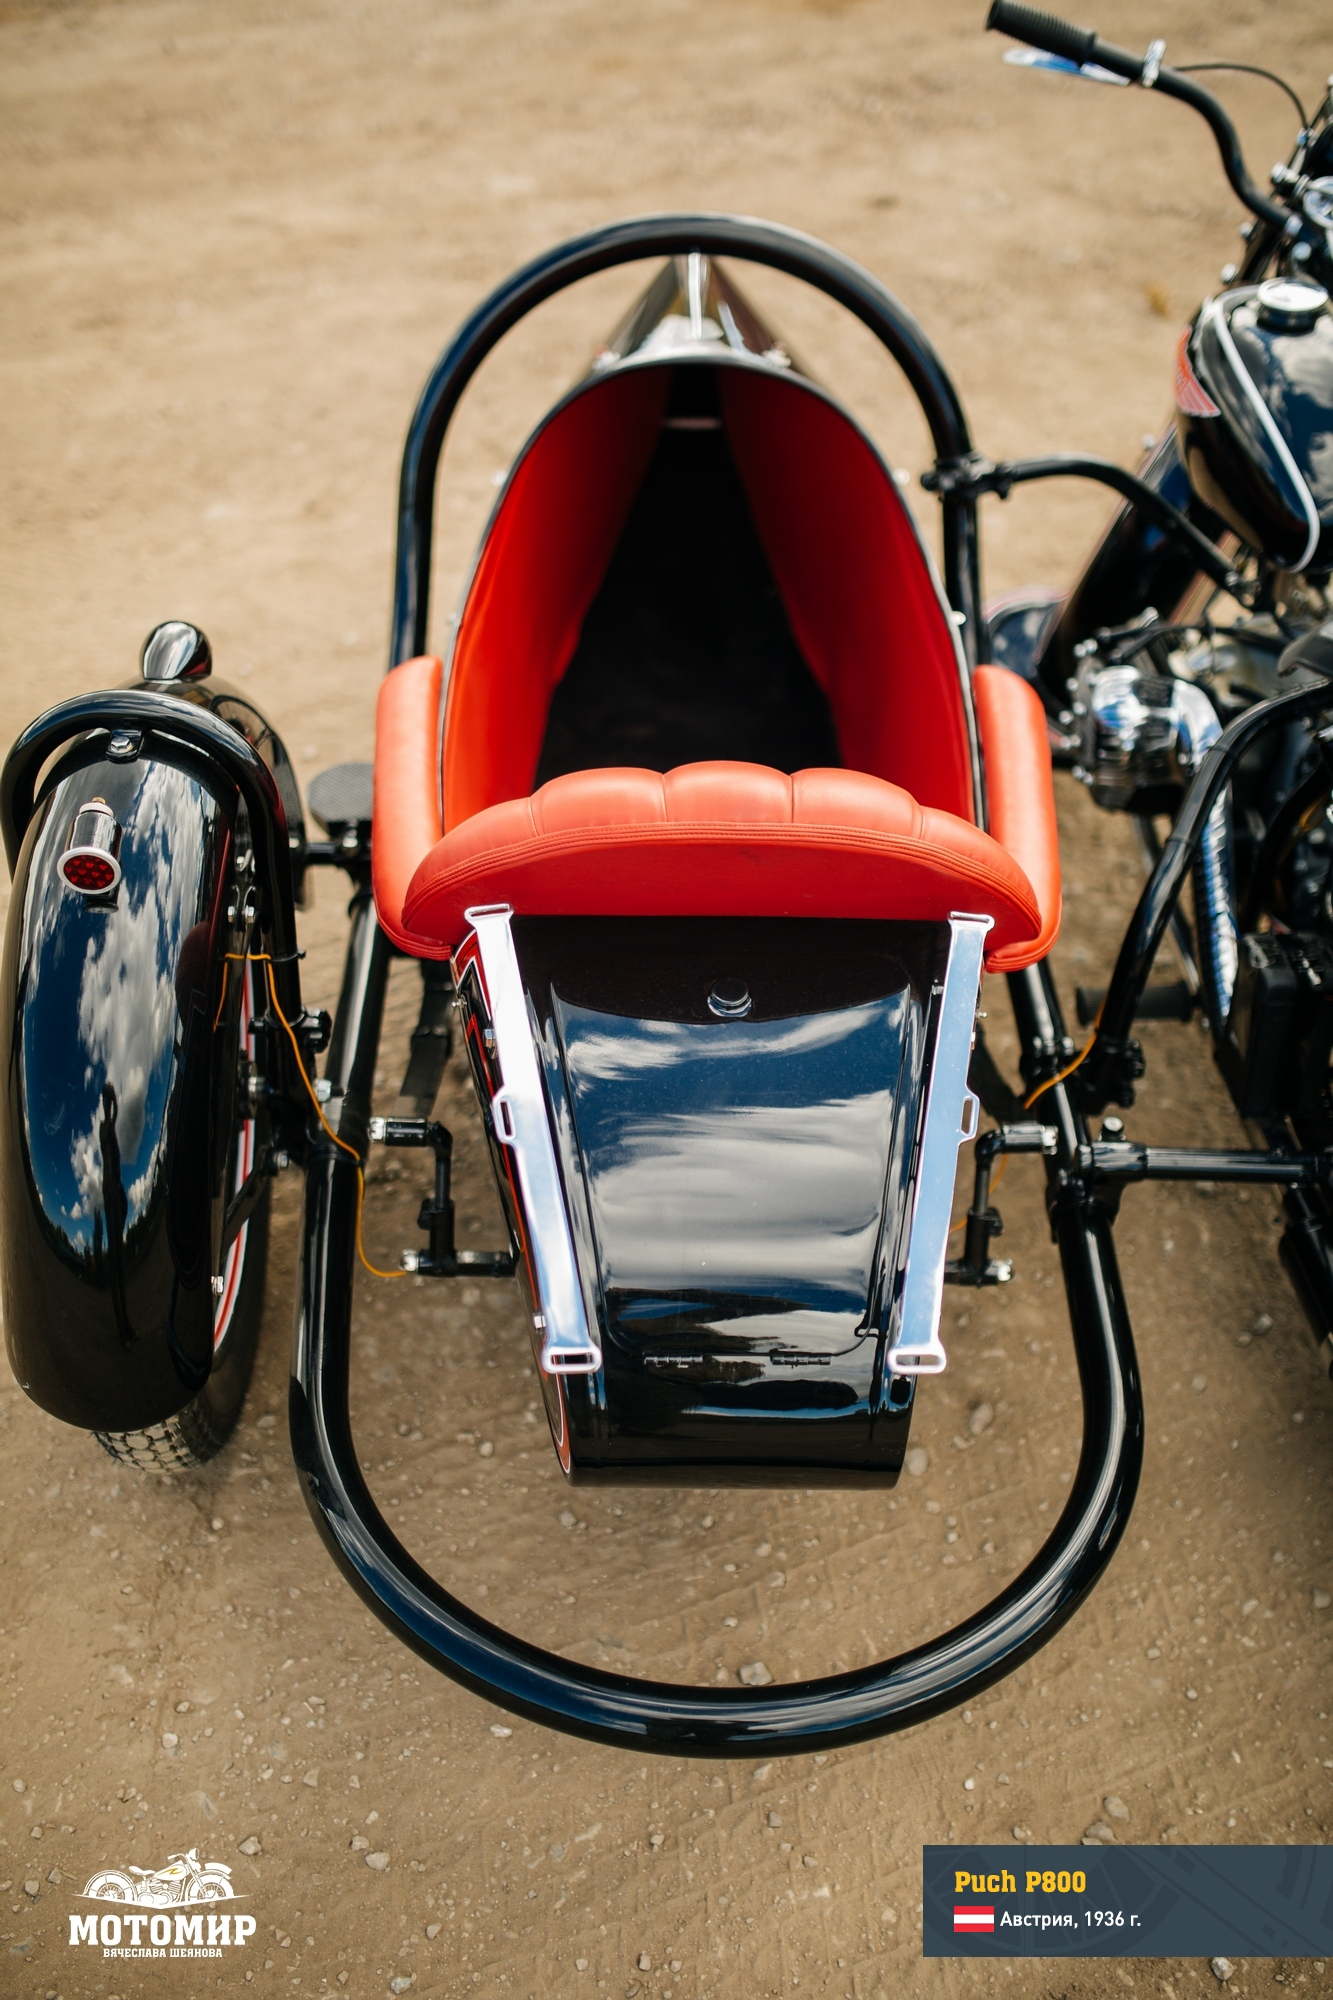 puch-p800-201510-web-40